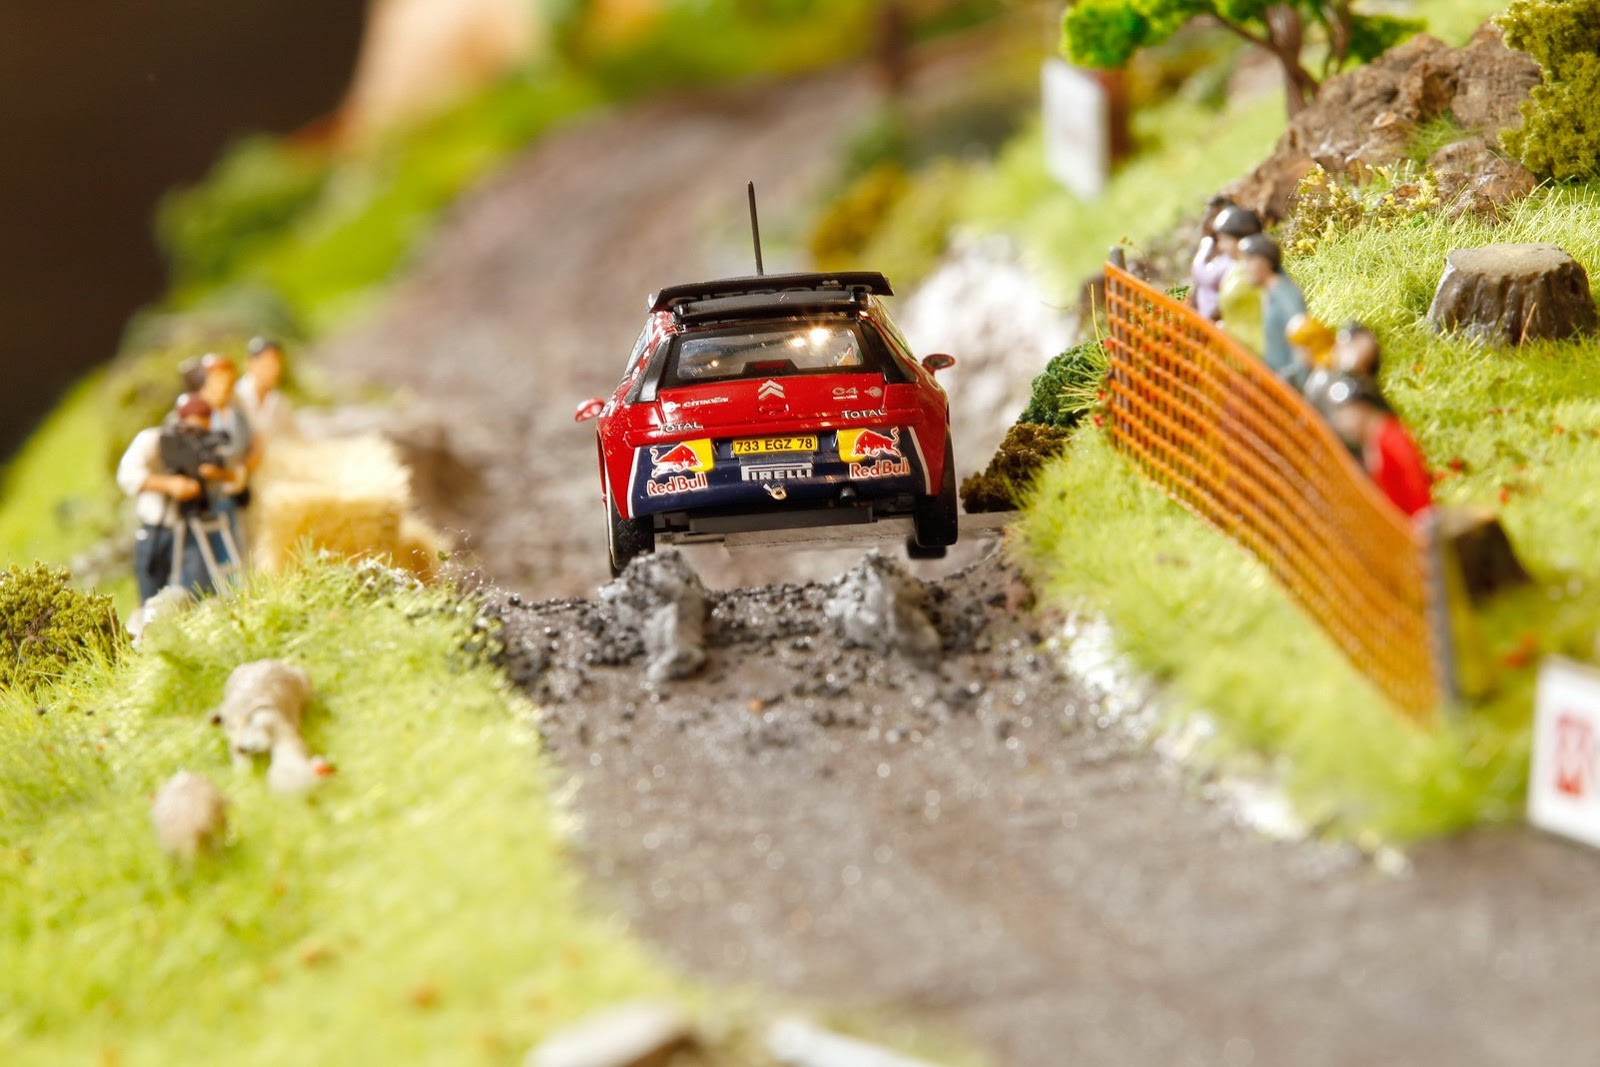 Zanimljive slike - Page 2 Citroen-celebrates-rally-success-with-impressive-diorama-on-top-of-a-ds3-photo-gallery_5